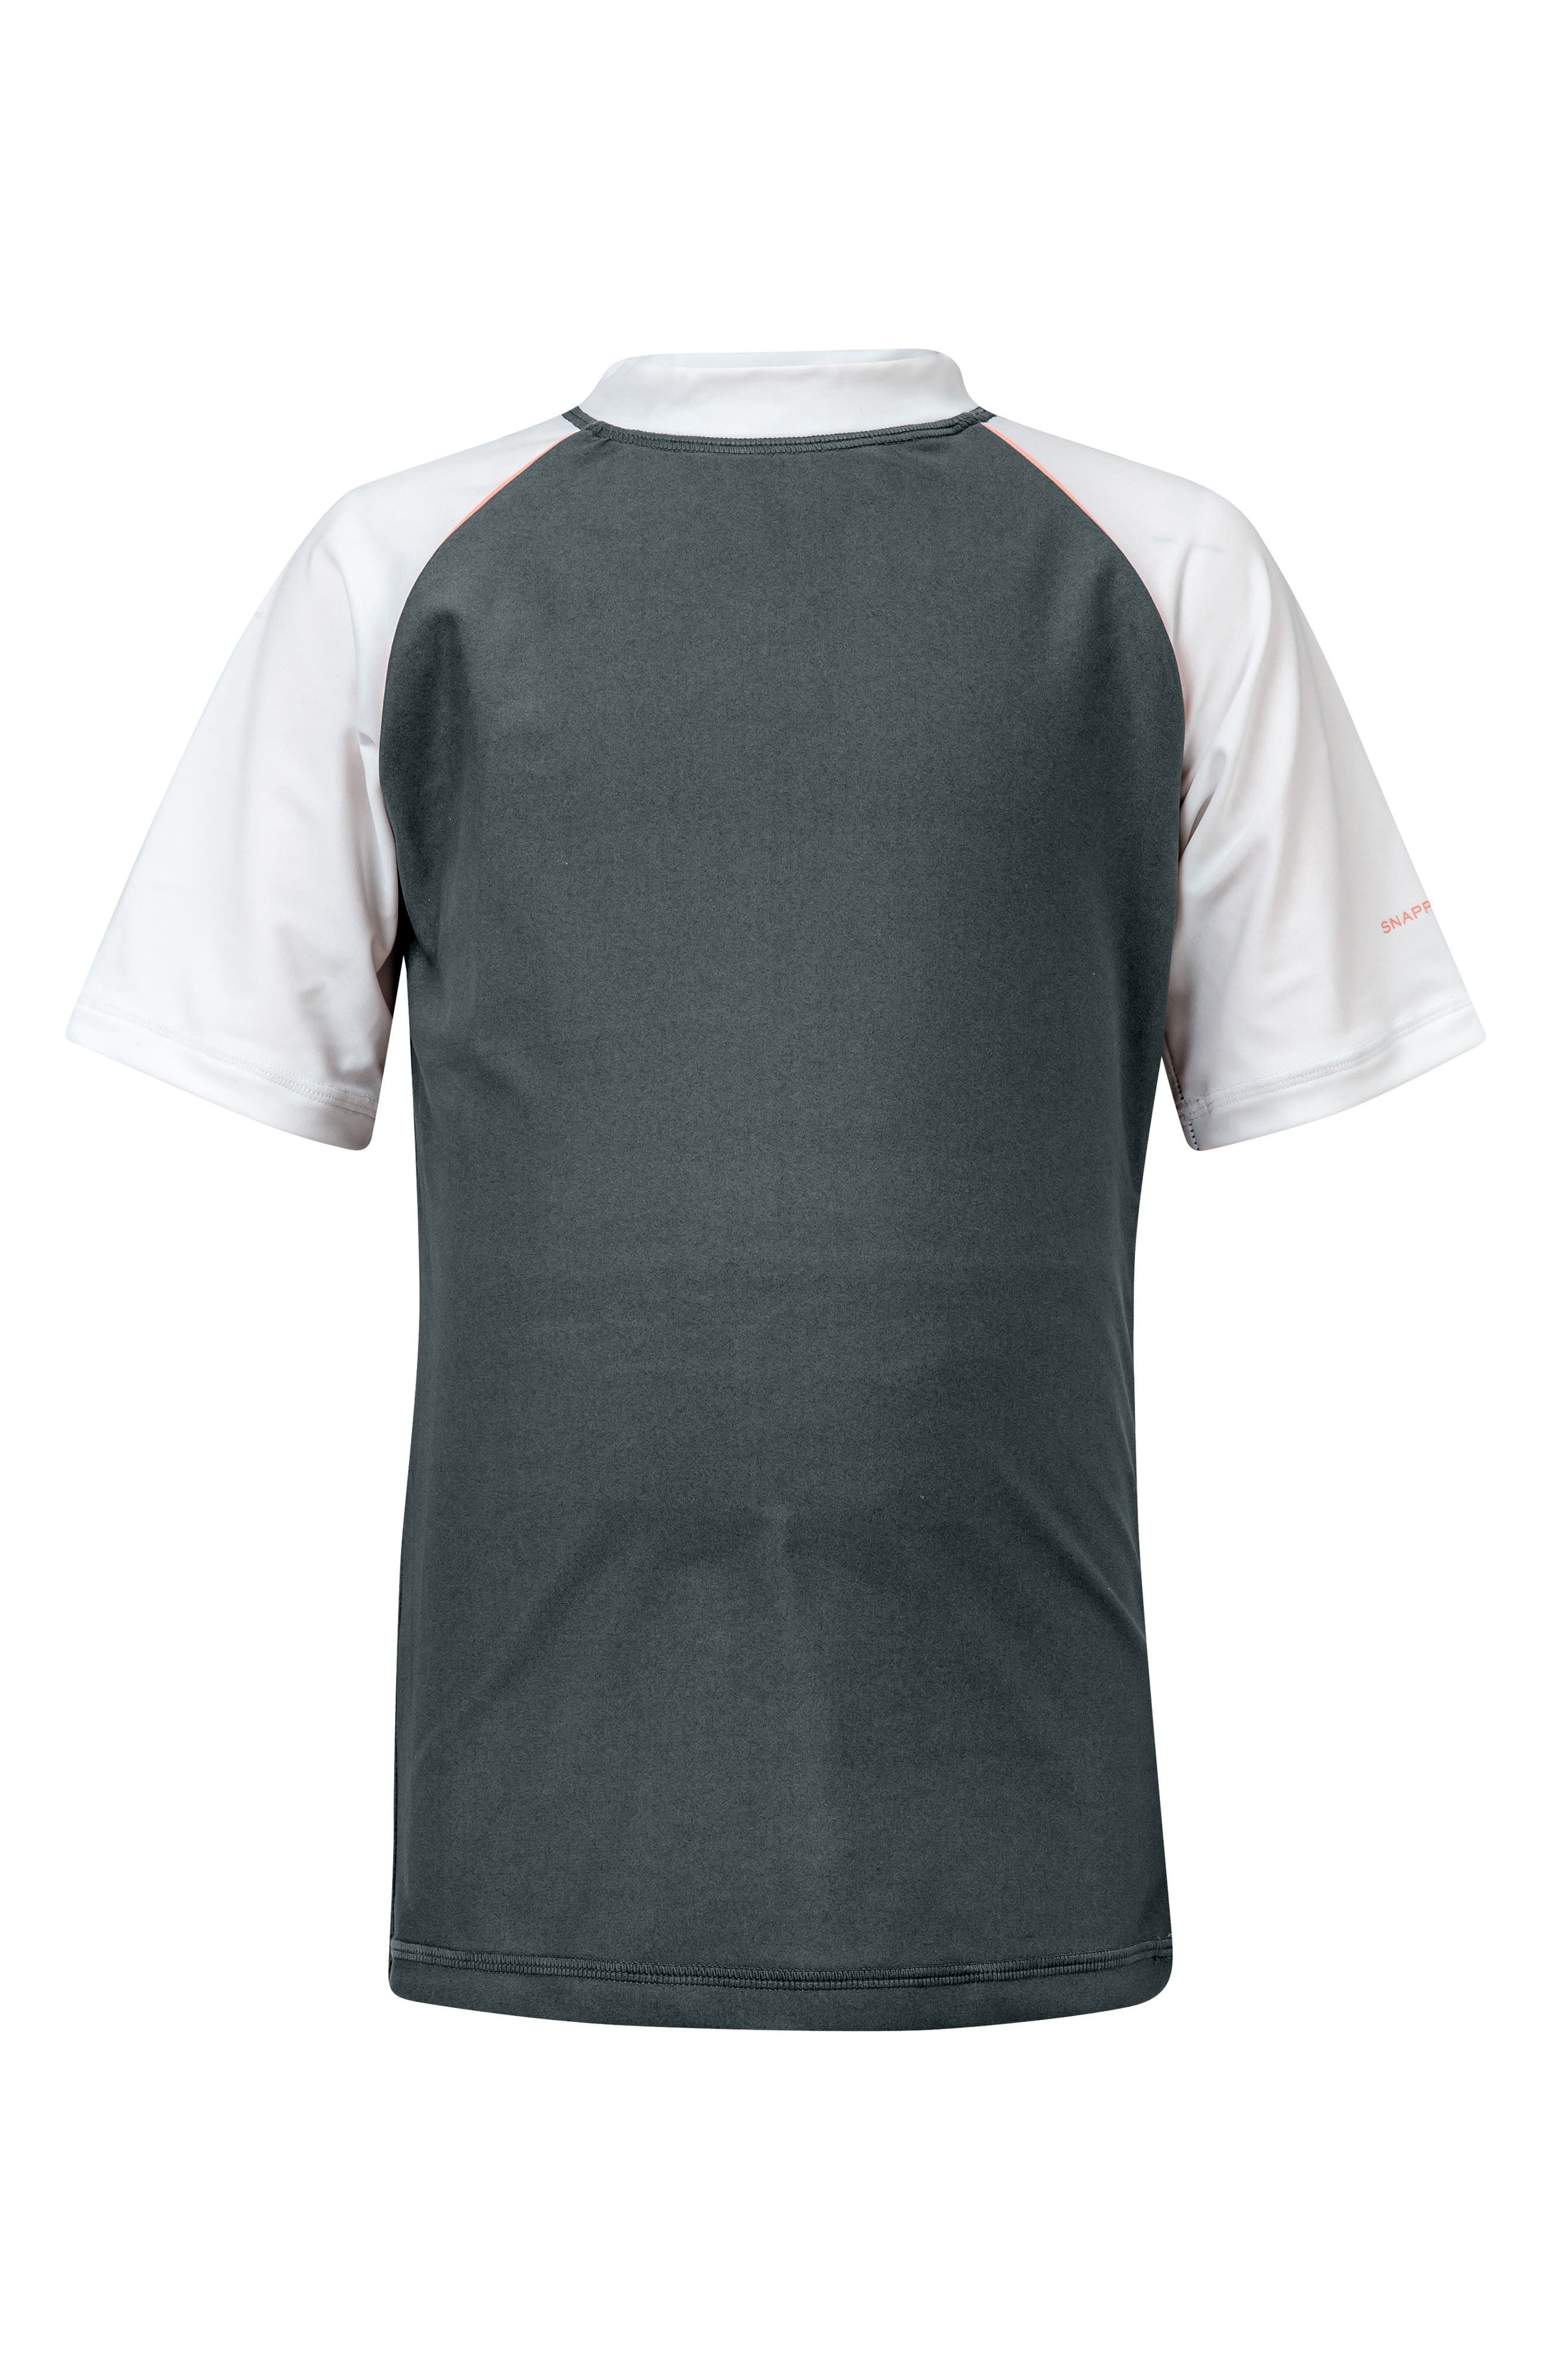 Raglan Short Sleeve Rashguard,                             Main thumbnail 1, color,                             Steel Grey